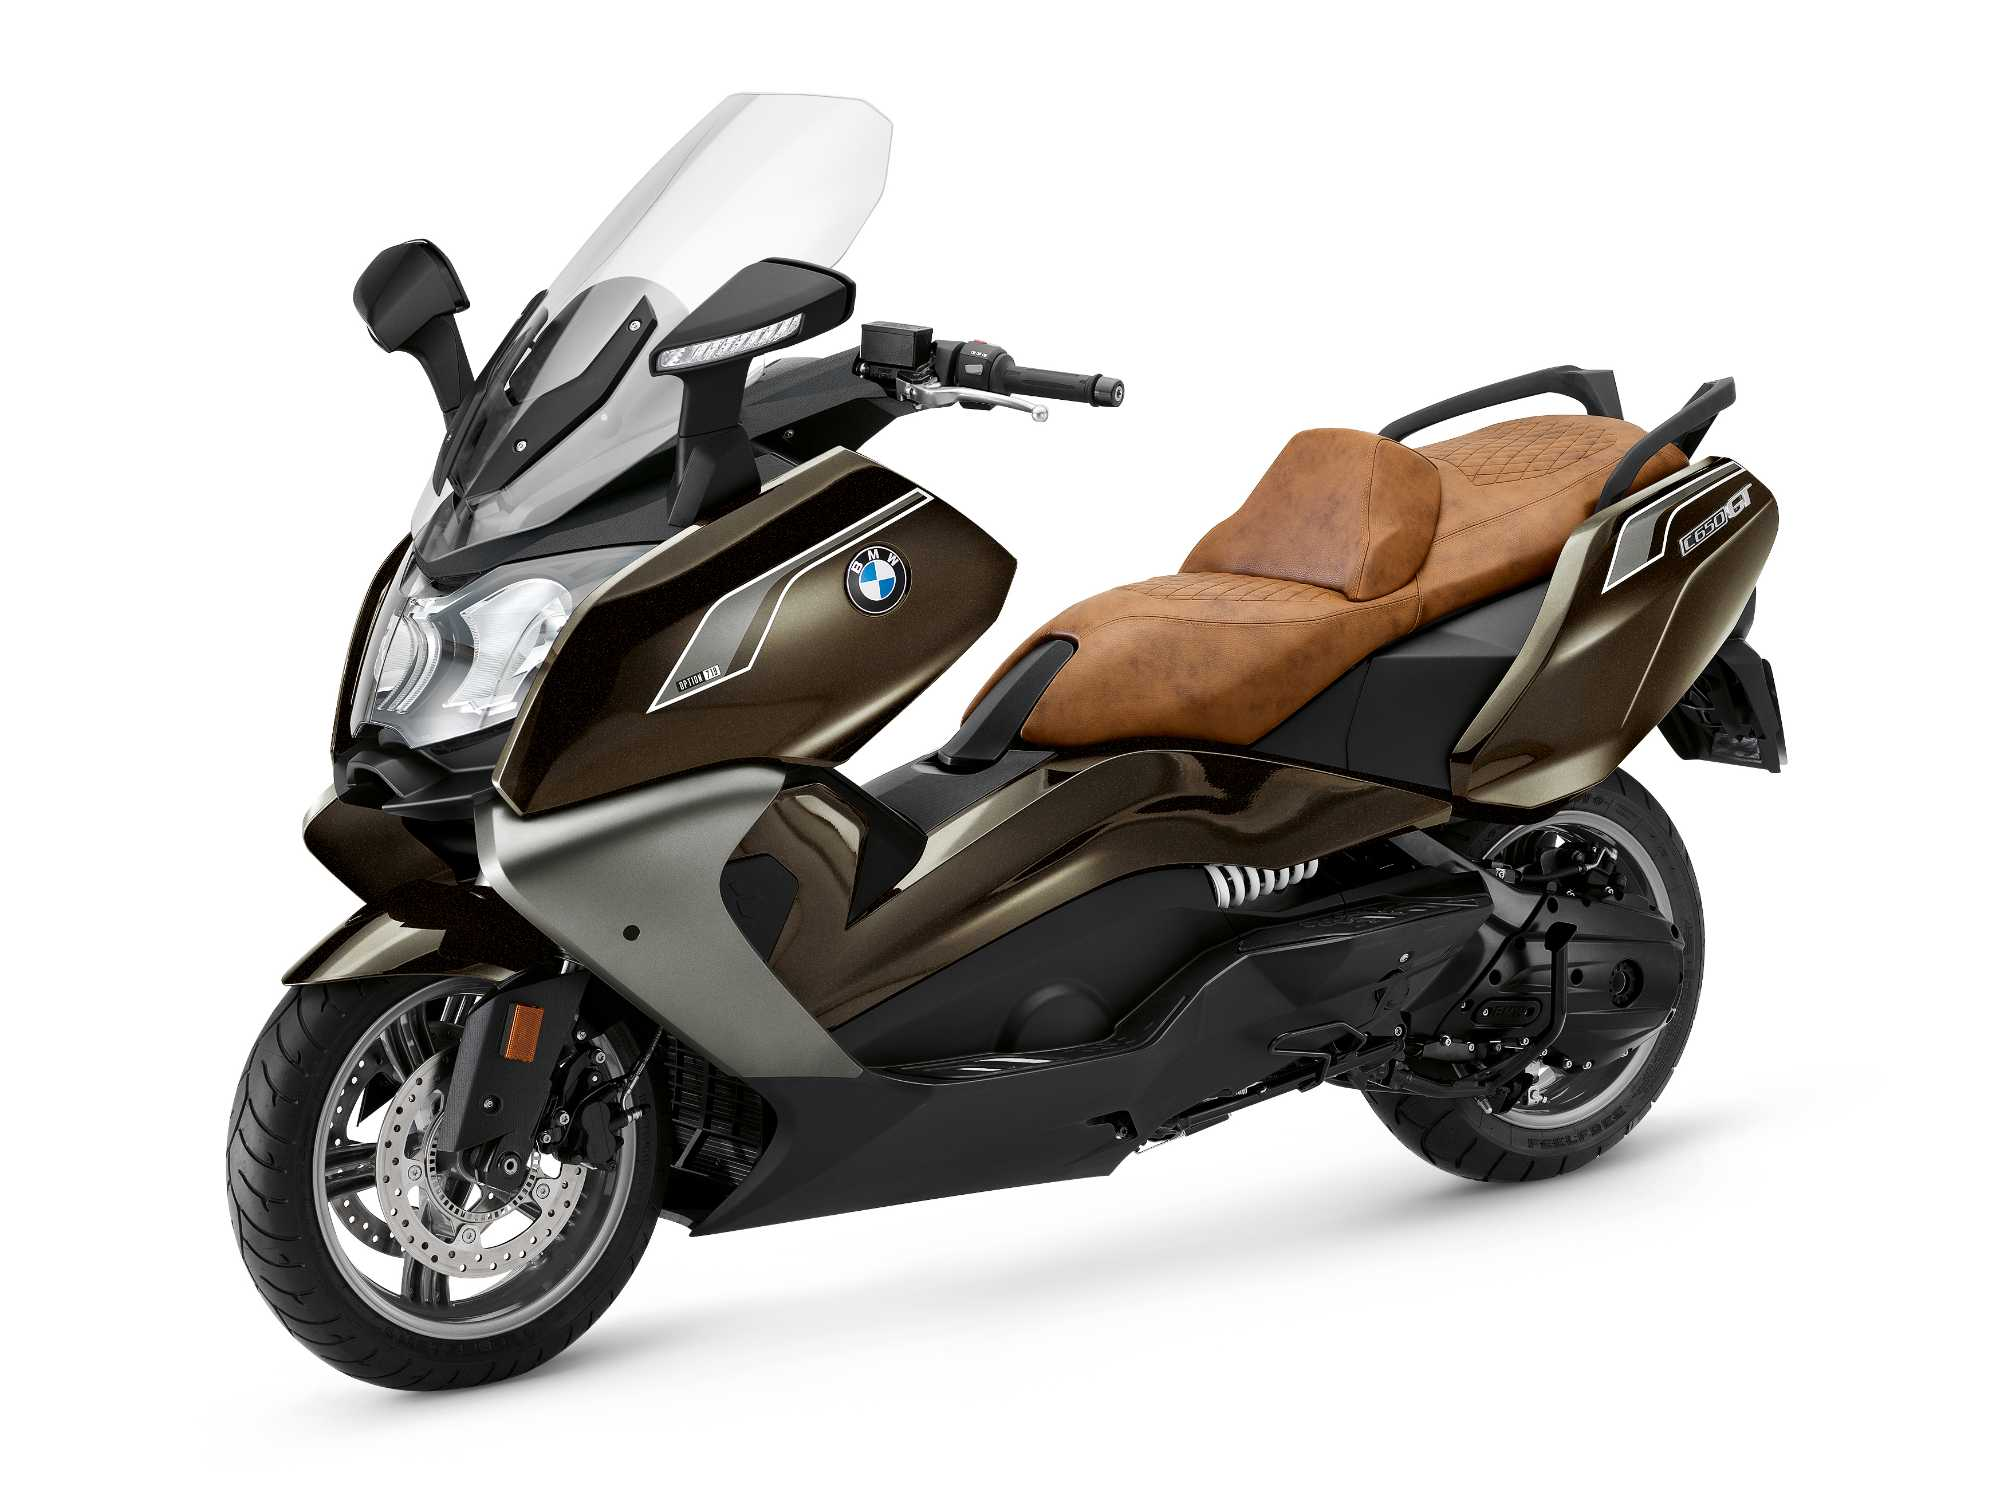 BMW C 650 GT, Option 719 Sparkling storm metallic with Option 719 brown  seat. (07/2018)